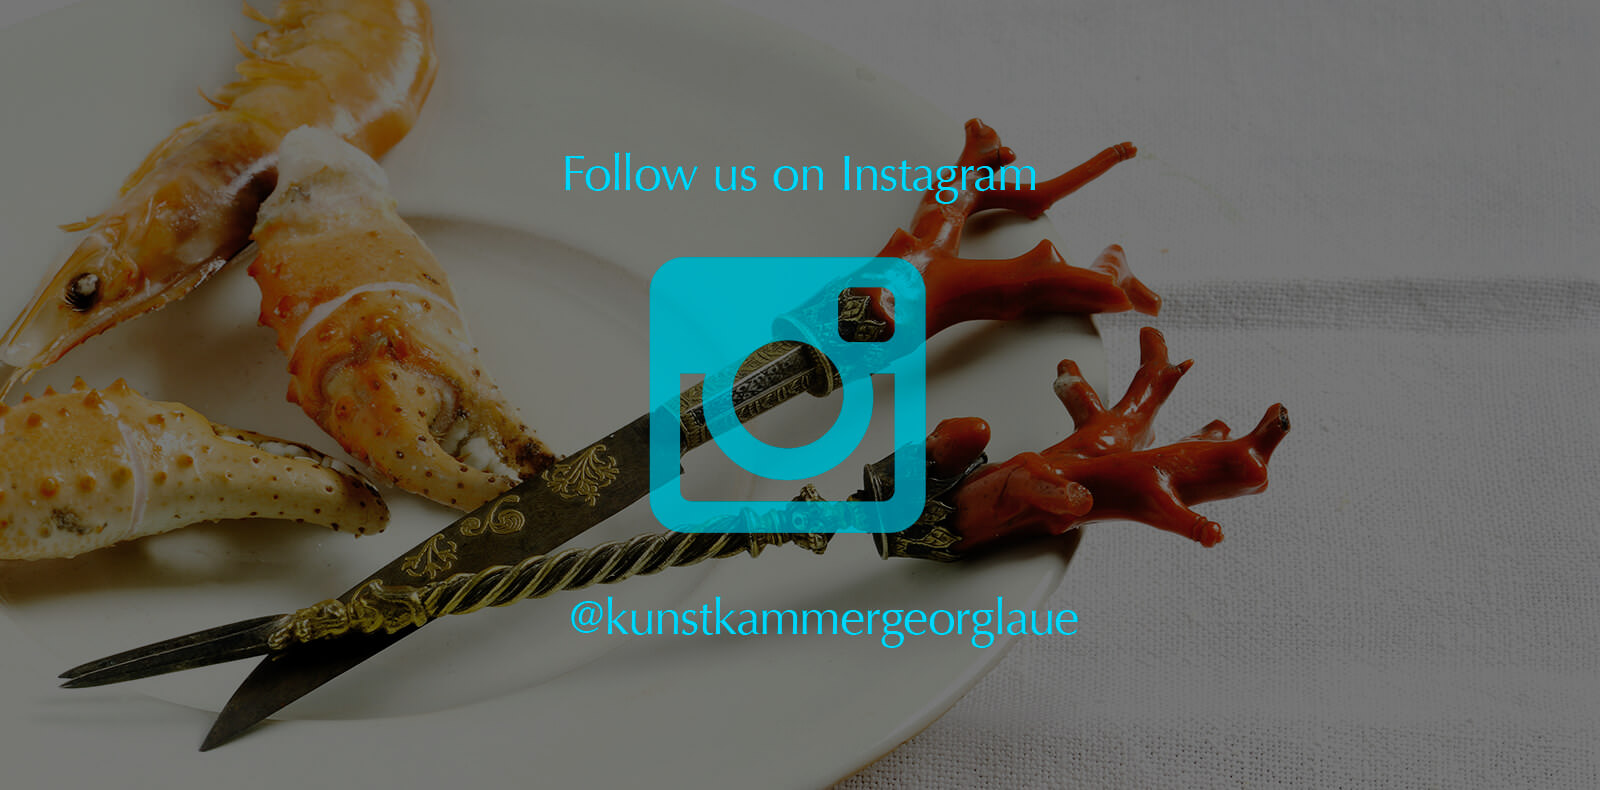 kunstkammer-georg-laue-on-instagram